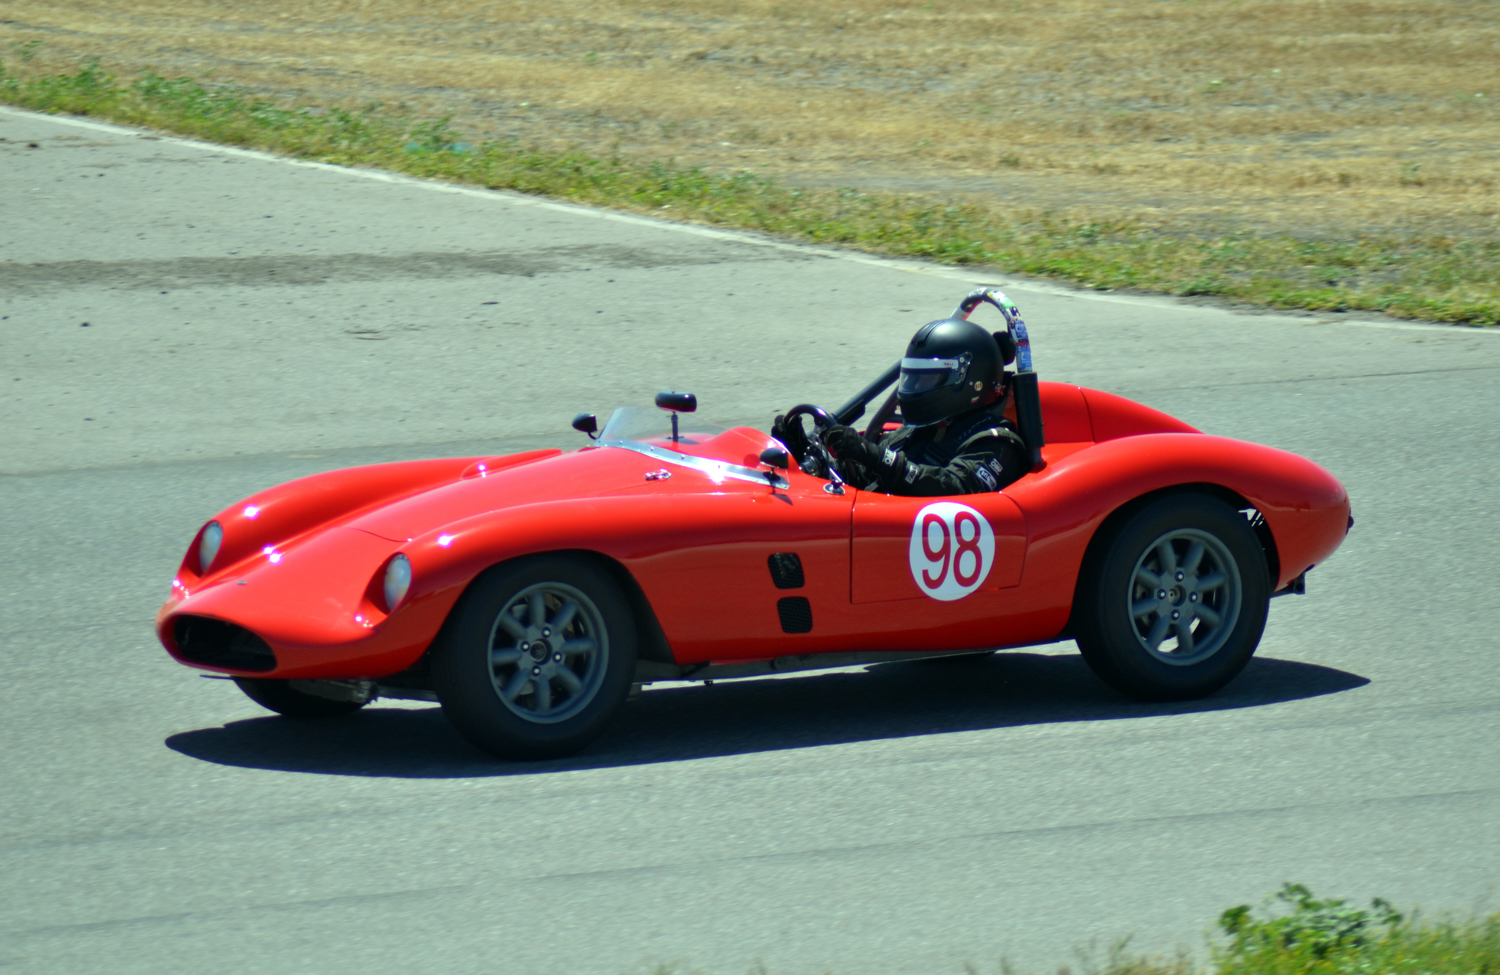 #98 Bill Hart, 1959 Devin, Best Lap: 2:18.567